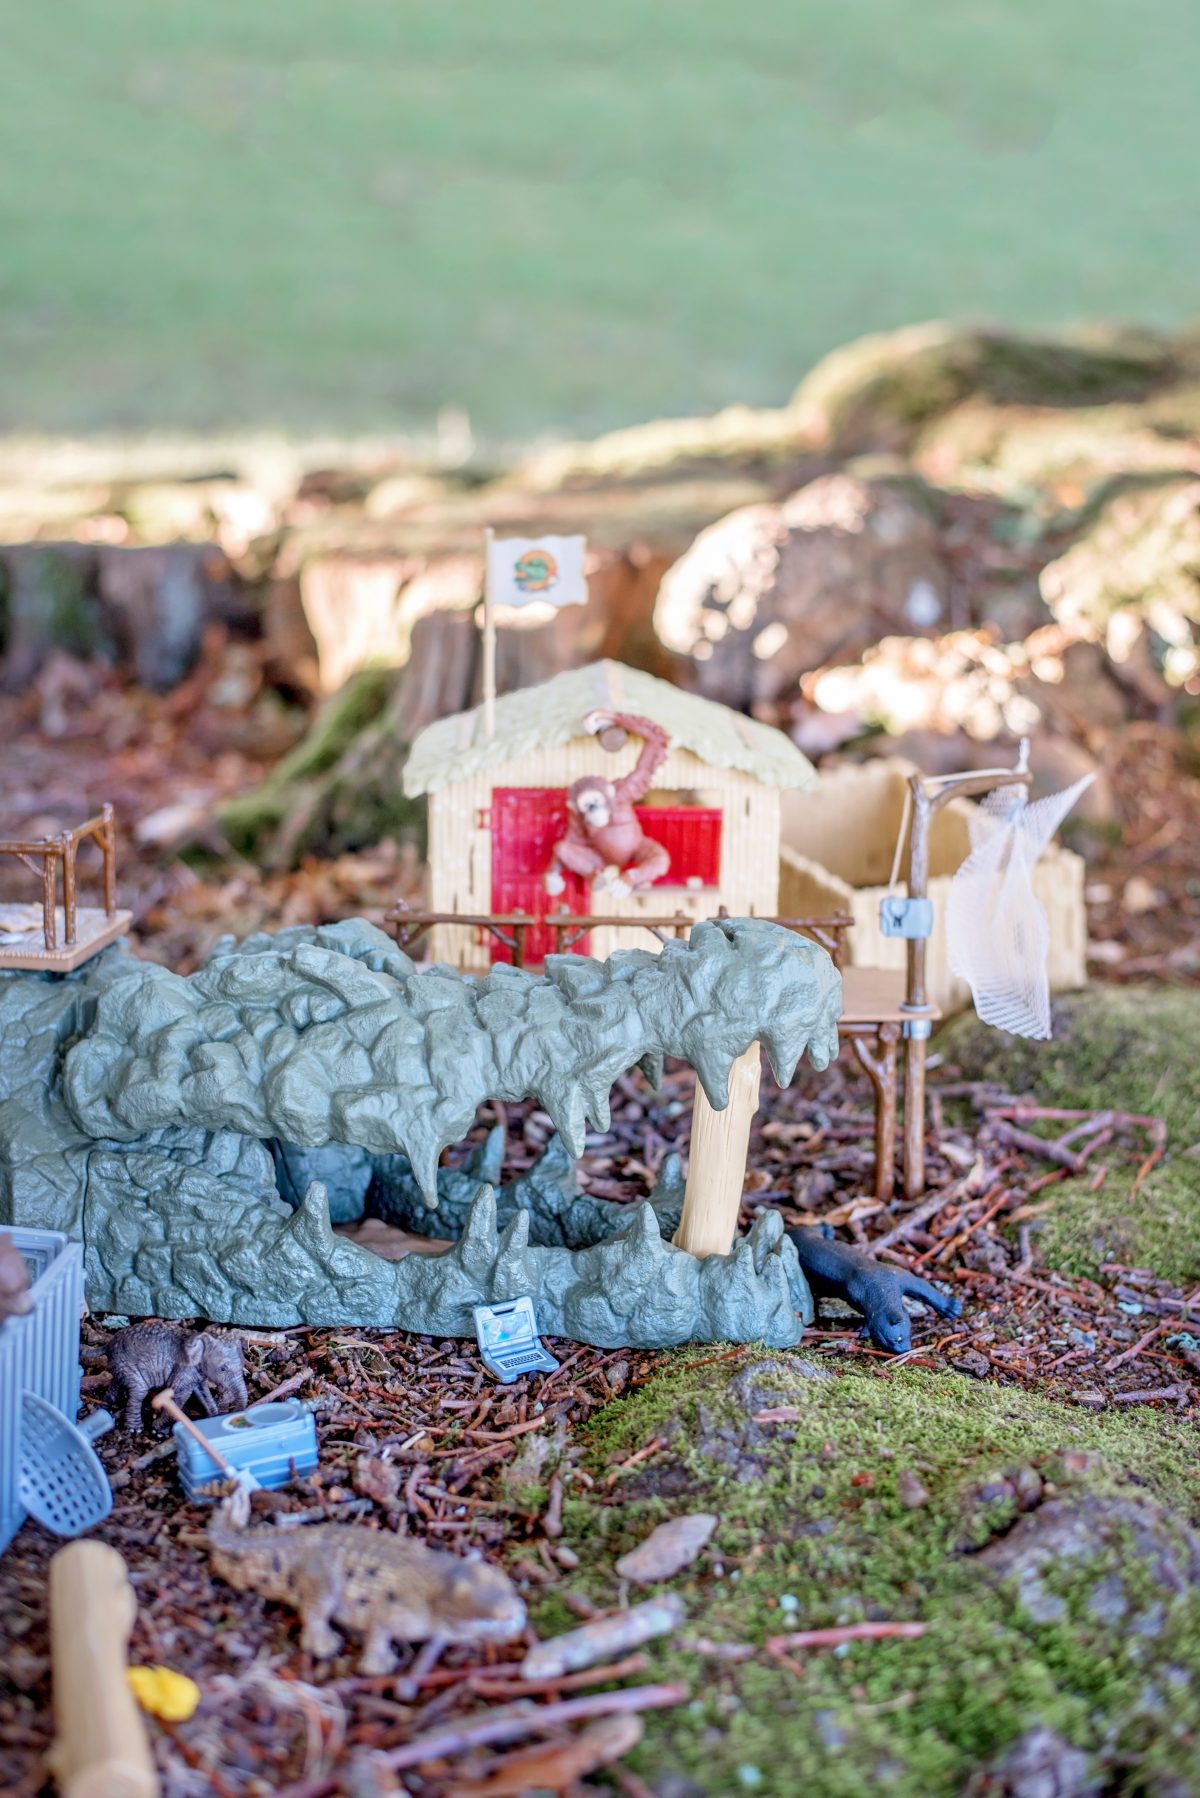 Schleich Croco Jungle Research Station #SCHLEICHANIMALMAGIC IBM HURSLEY